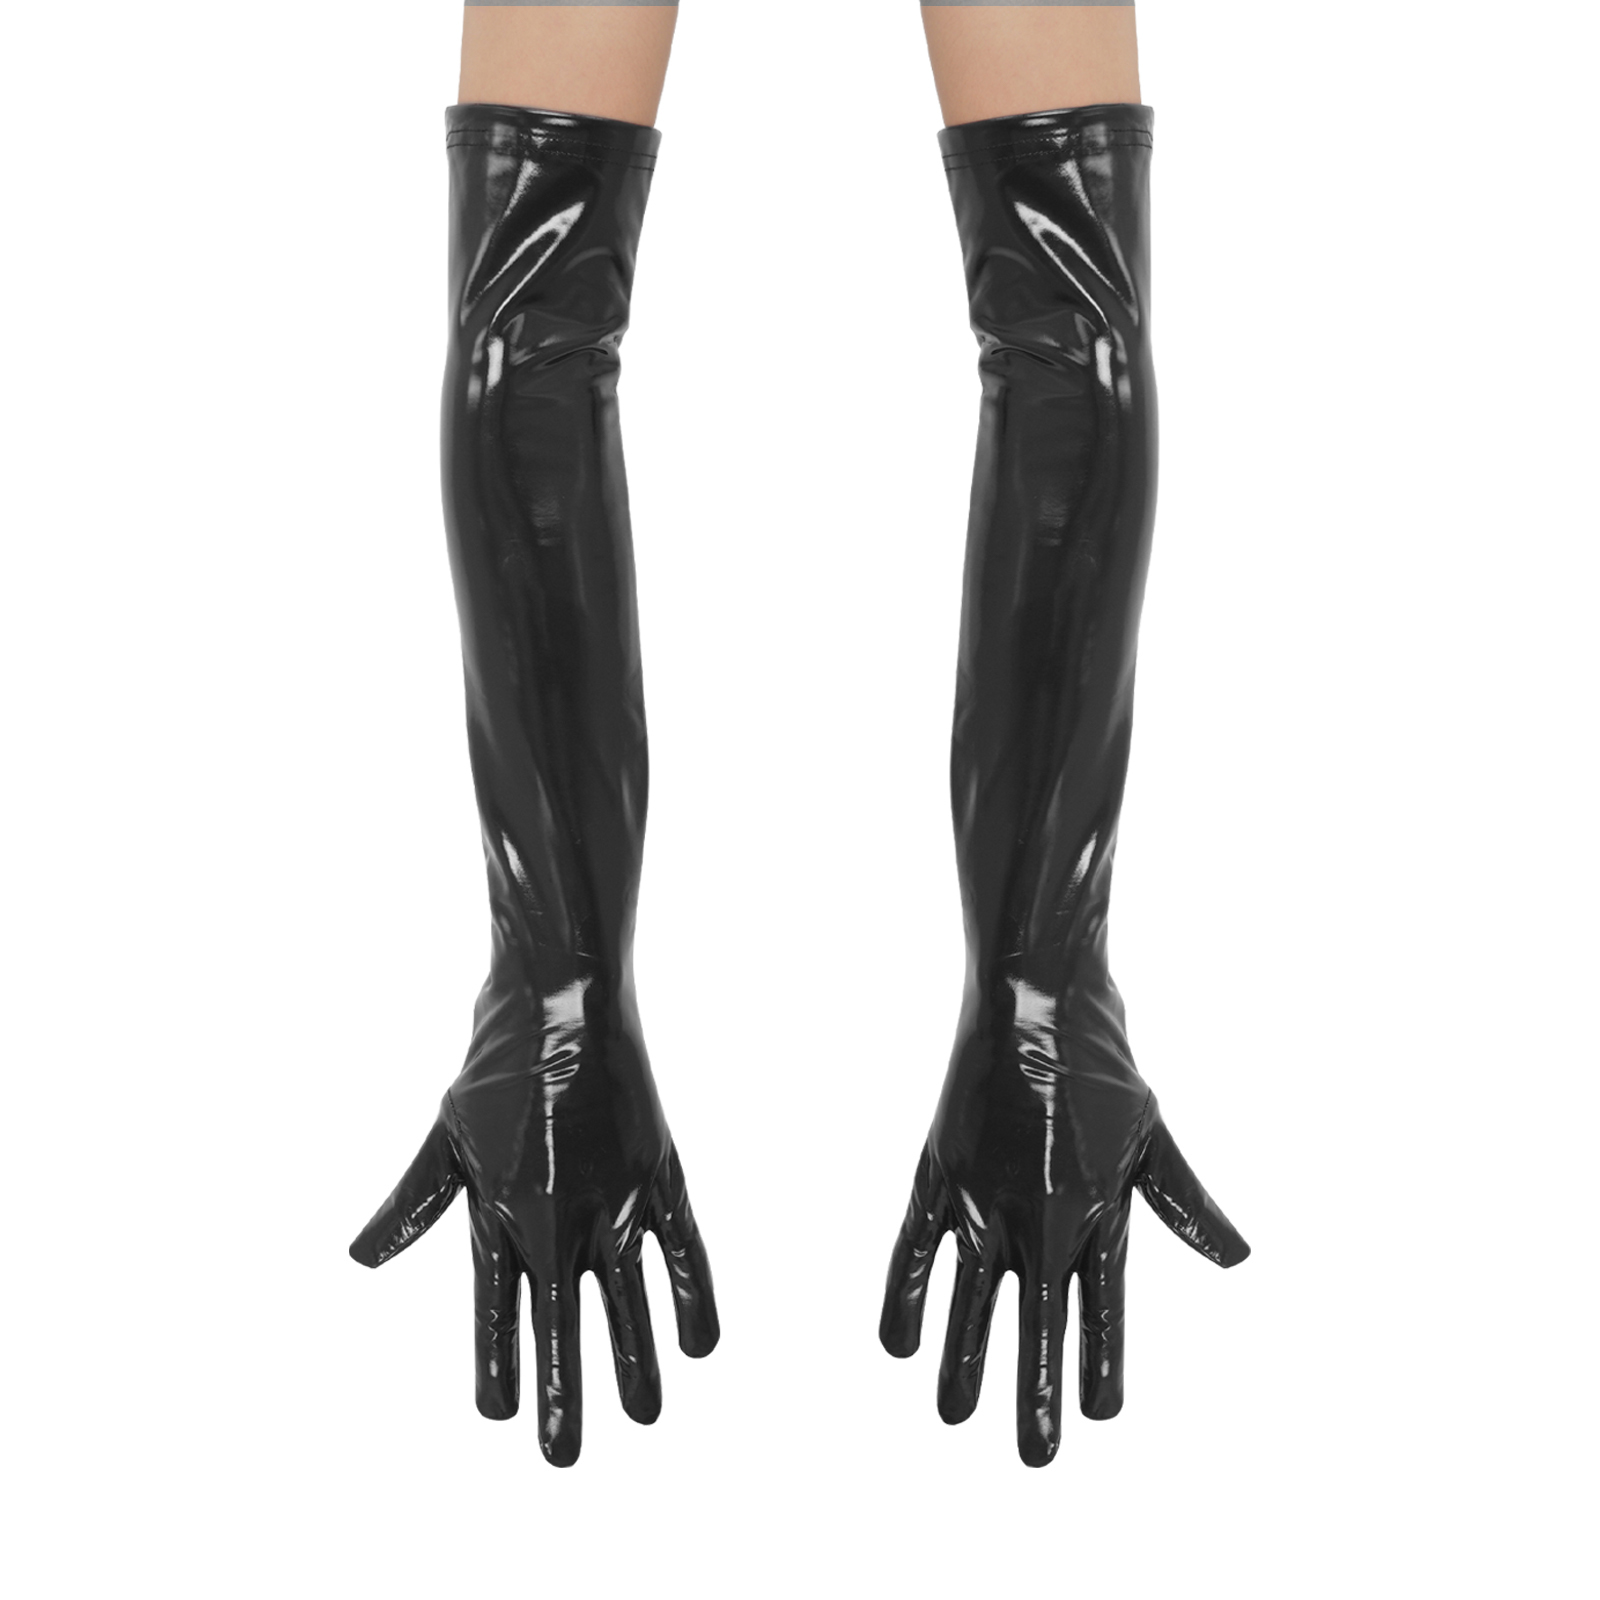 1 Pair Black Gloves for Women Wet Look Shiny Patent Leather Long Gloves Costumes Accessories for Banquet Opera Performance